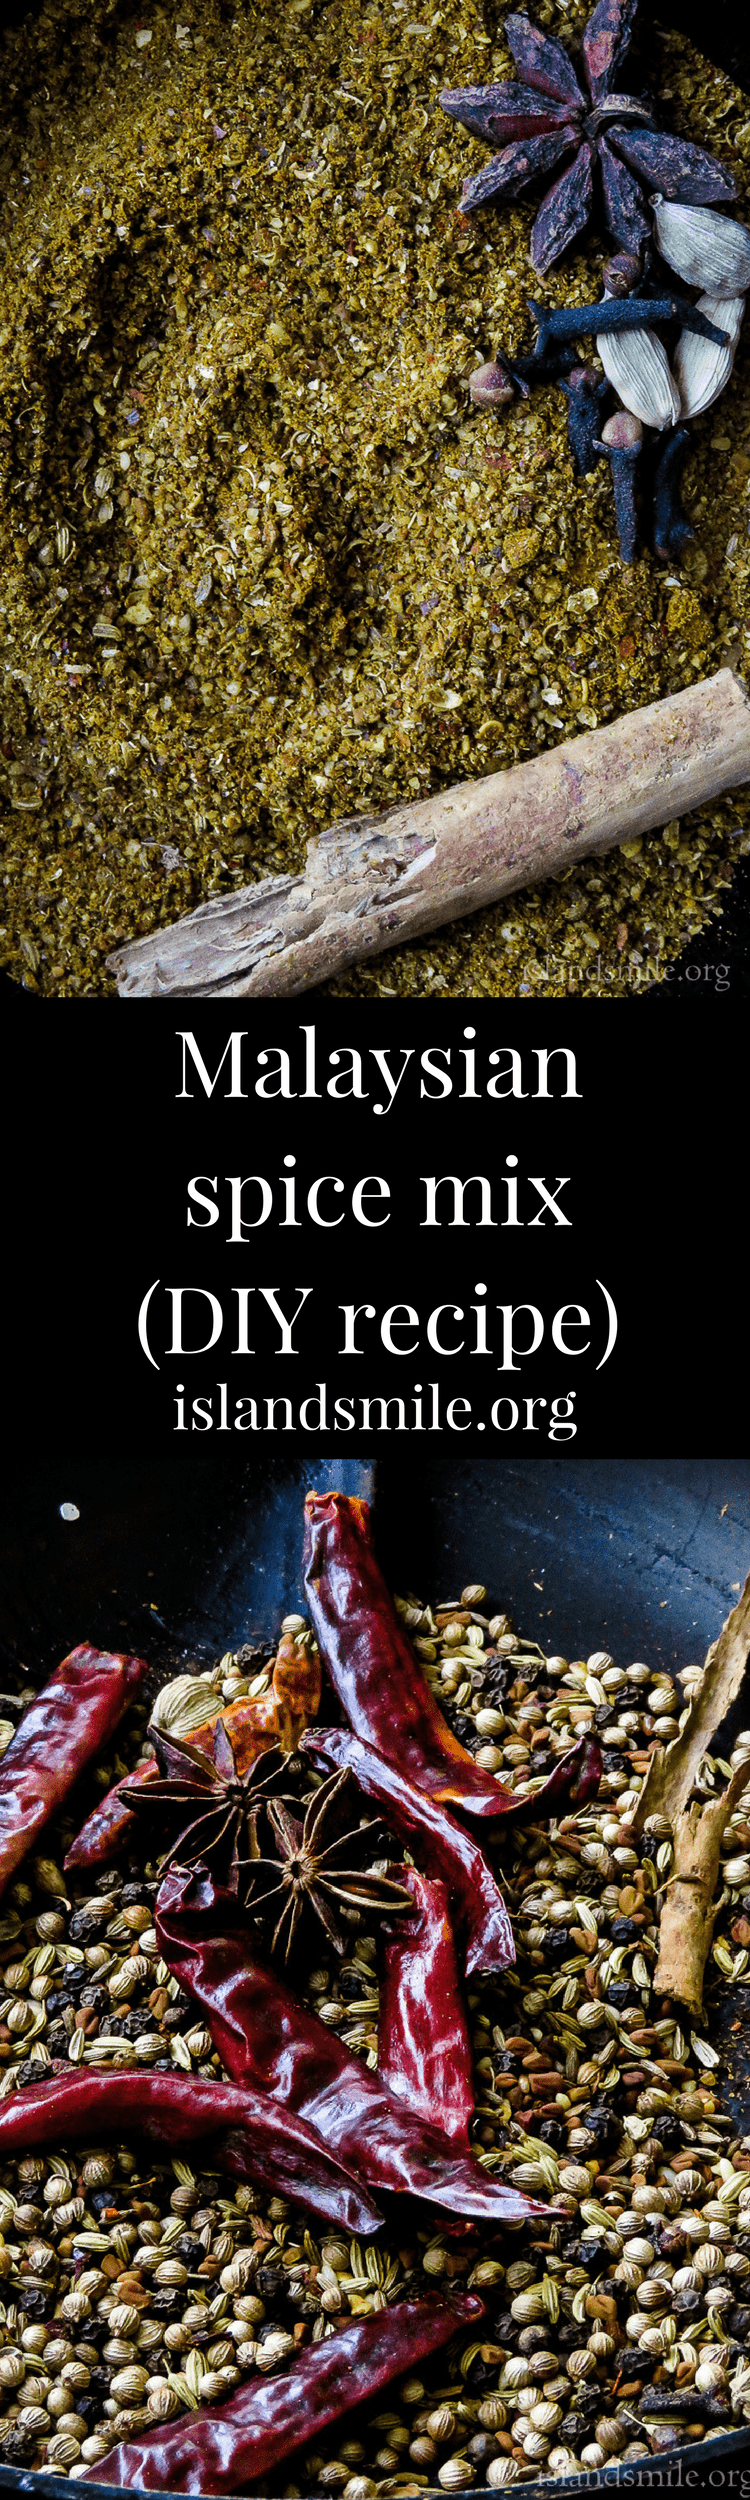 A FRAGRANT BLEND OF SPICES CREATE THIS MALAYSIAN CURRY POWDER FOR MEATS. YOU'LL NOTICE HOW DEEP AND INTENSE THE FLAVORS TURN OUT.